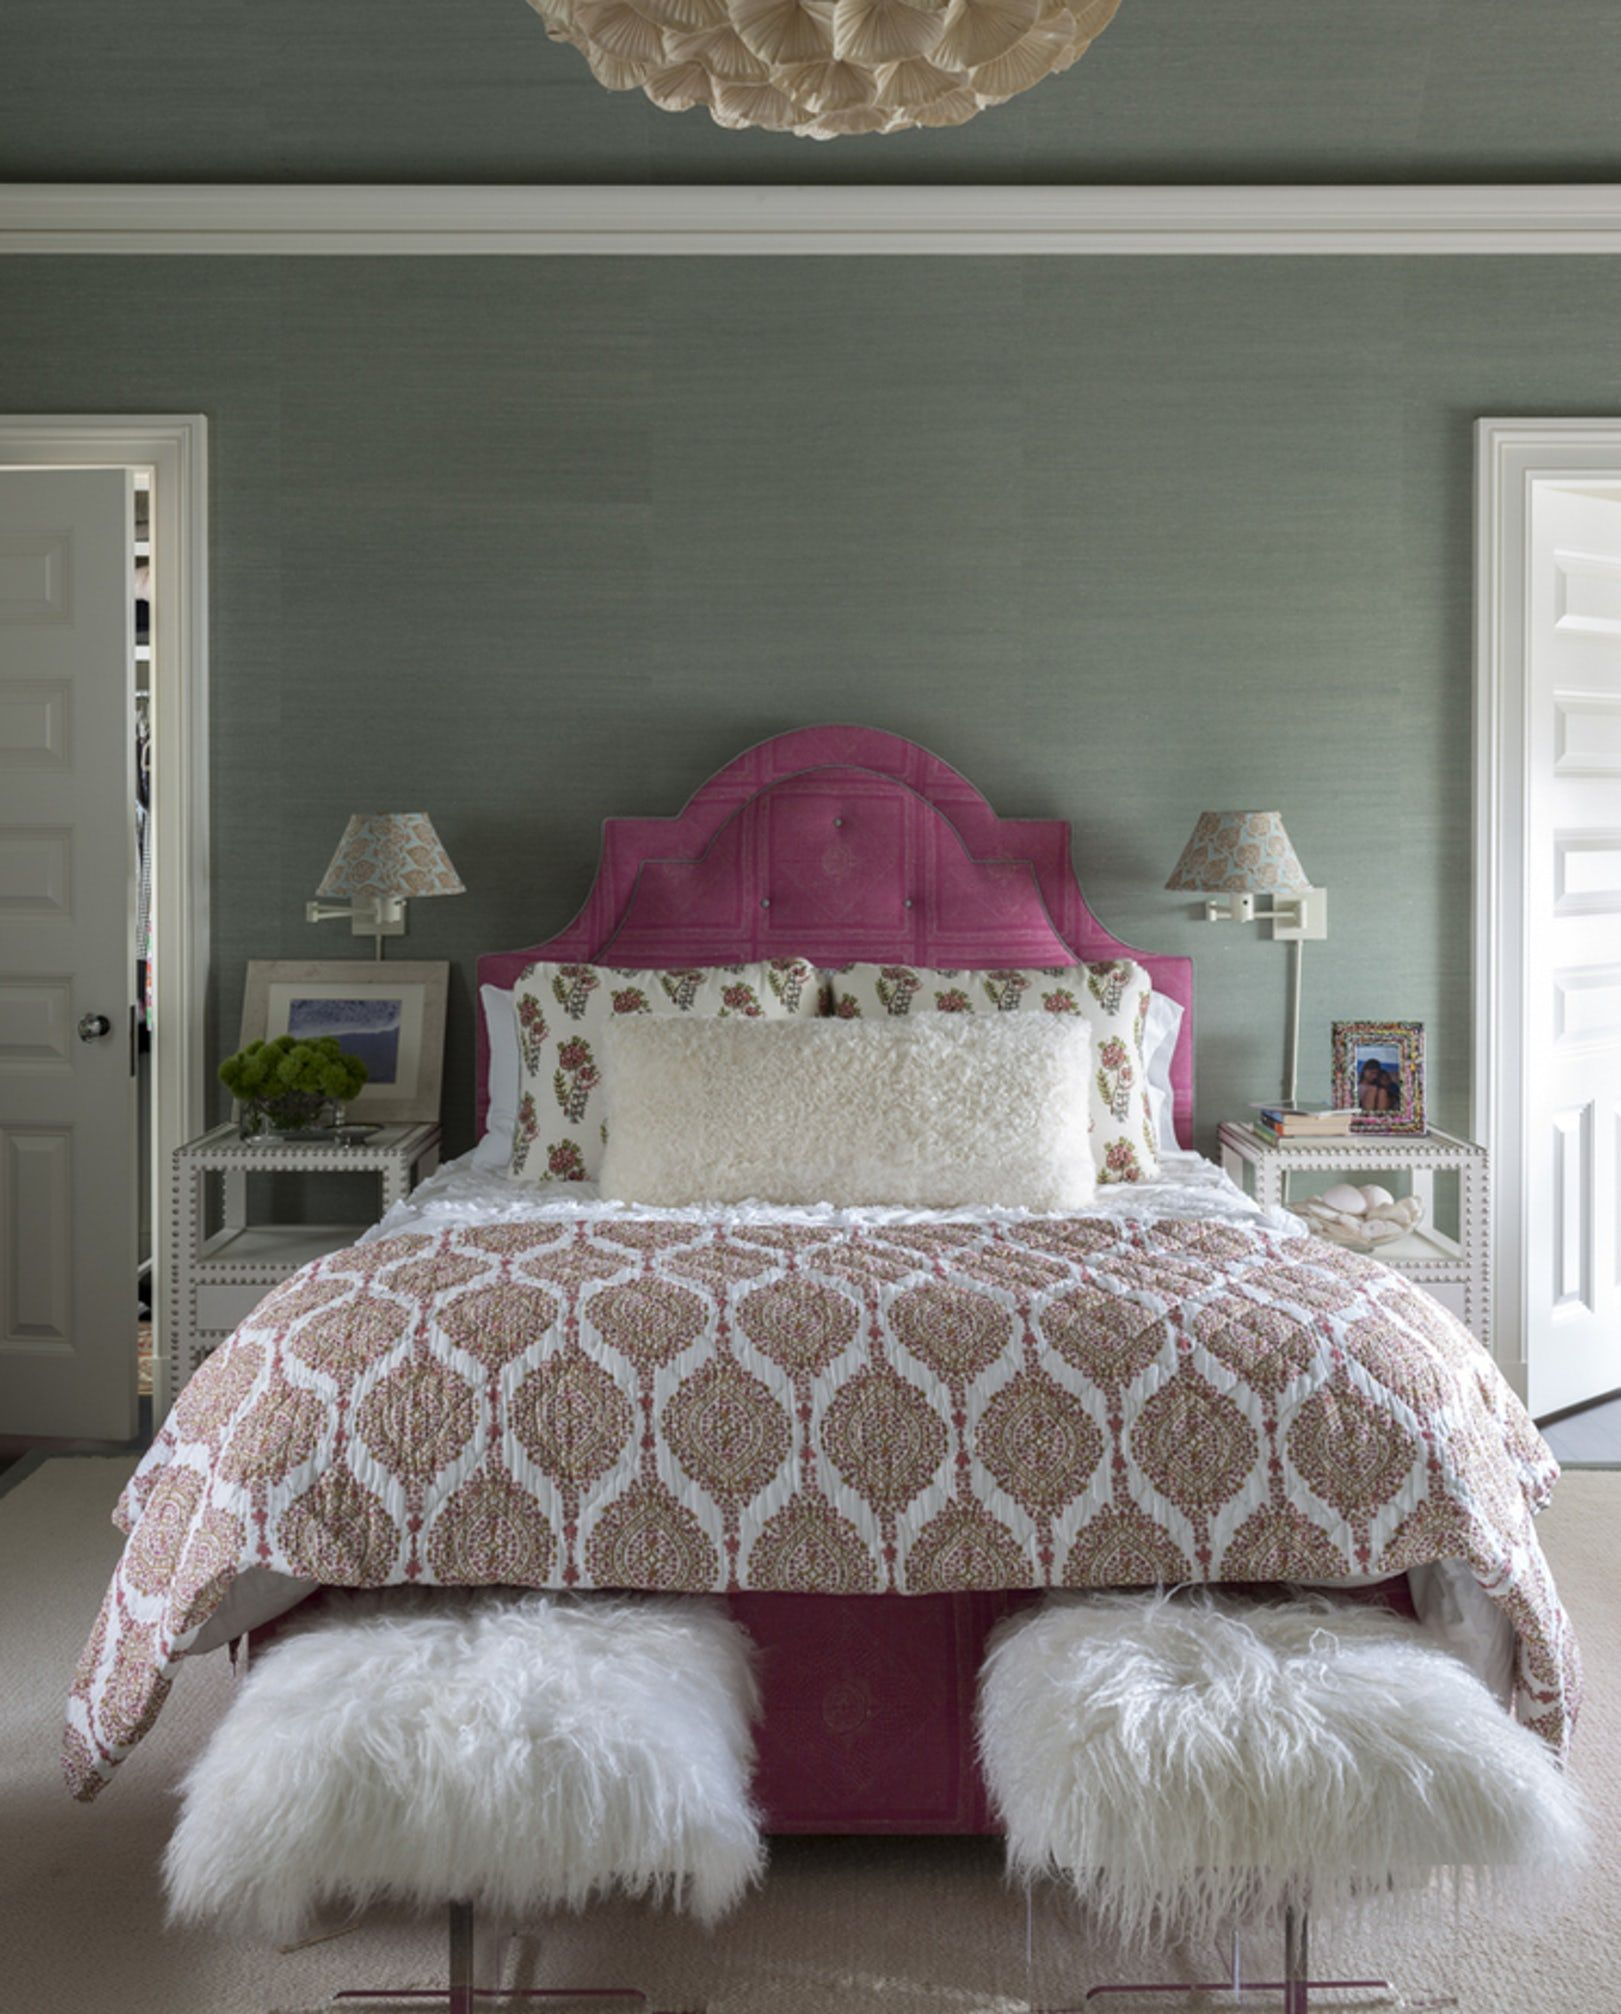 Bedroom ideas for young adults girls Pinterest Girls Bedrooms Elle Decor 15 Creative Girls Room Ideas How To Decorate Girls Bedroom